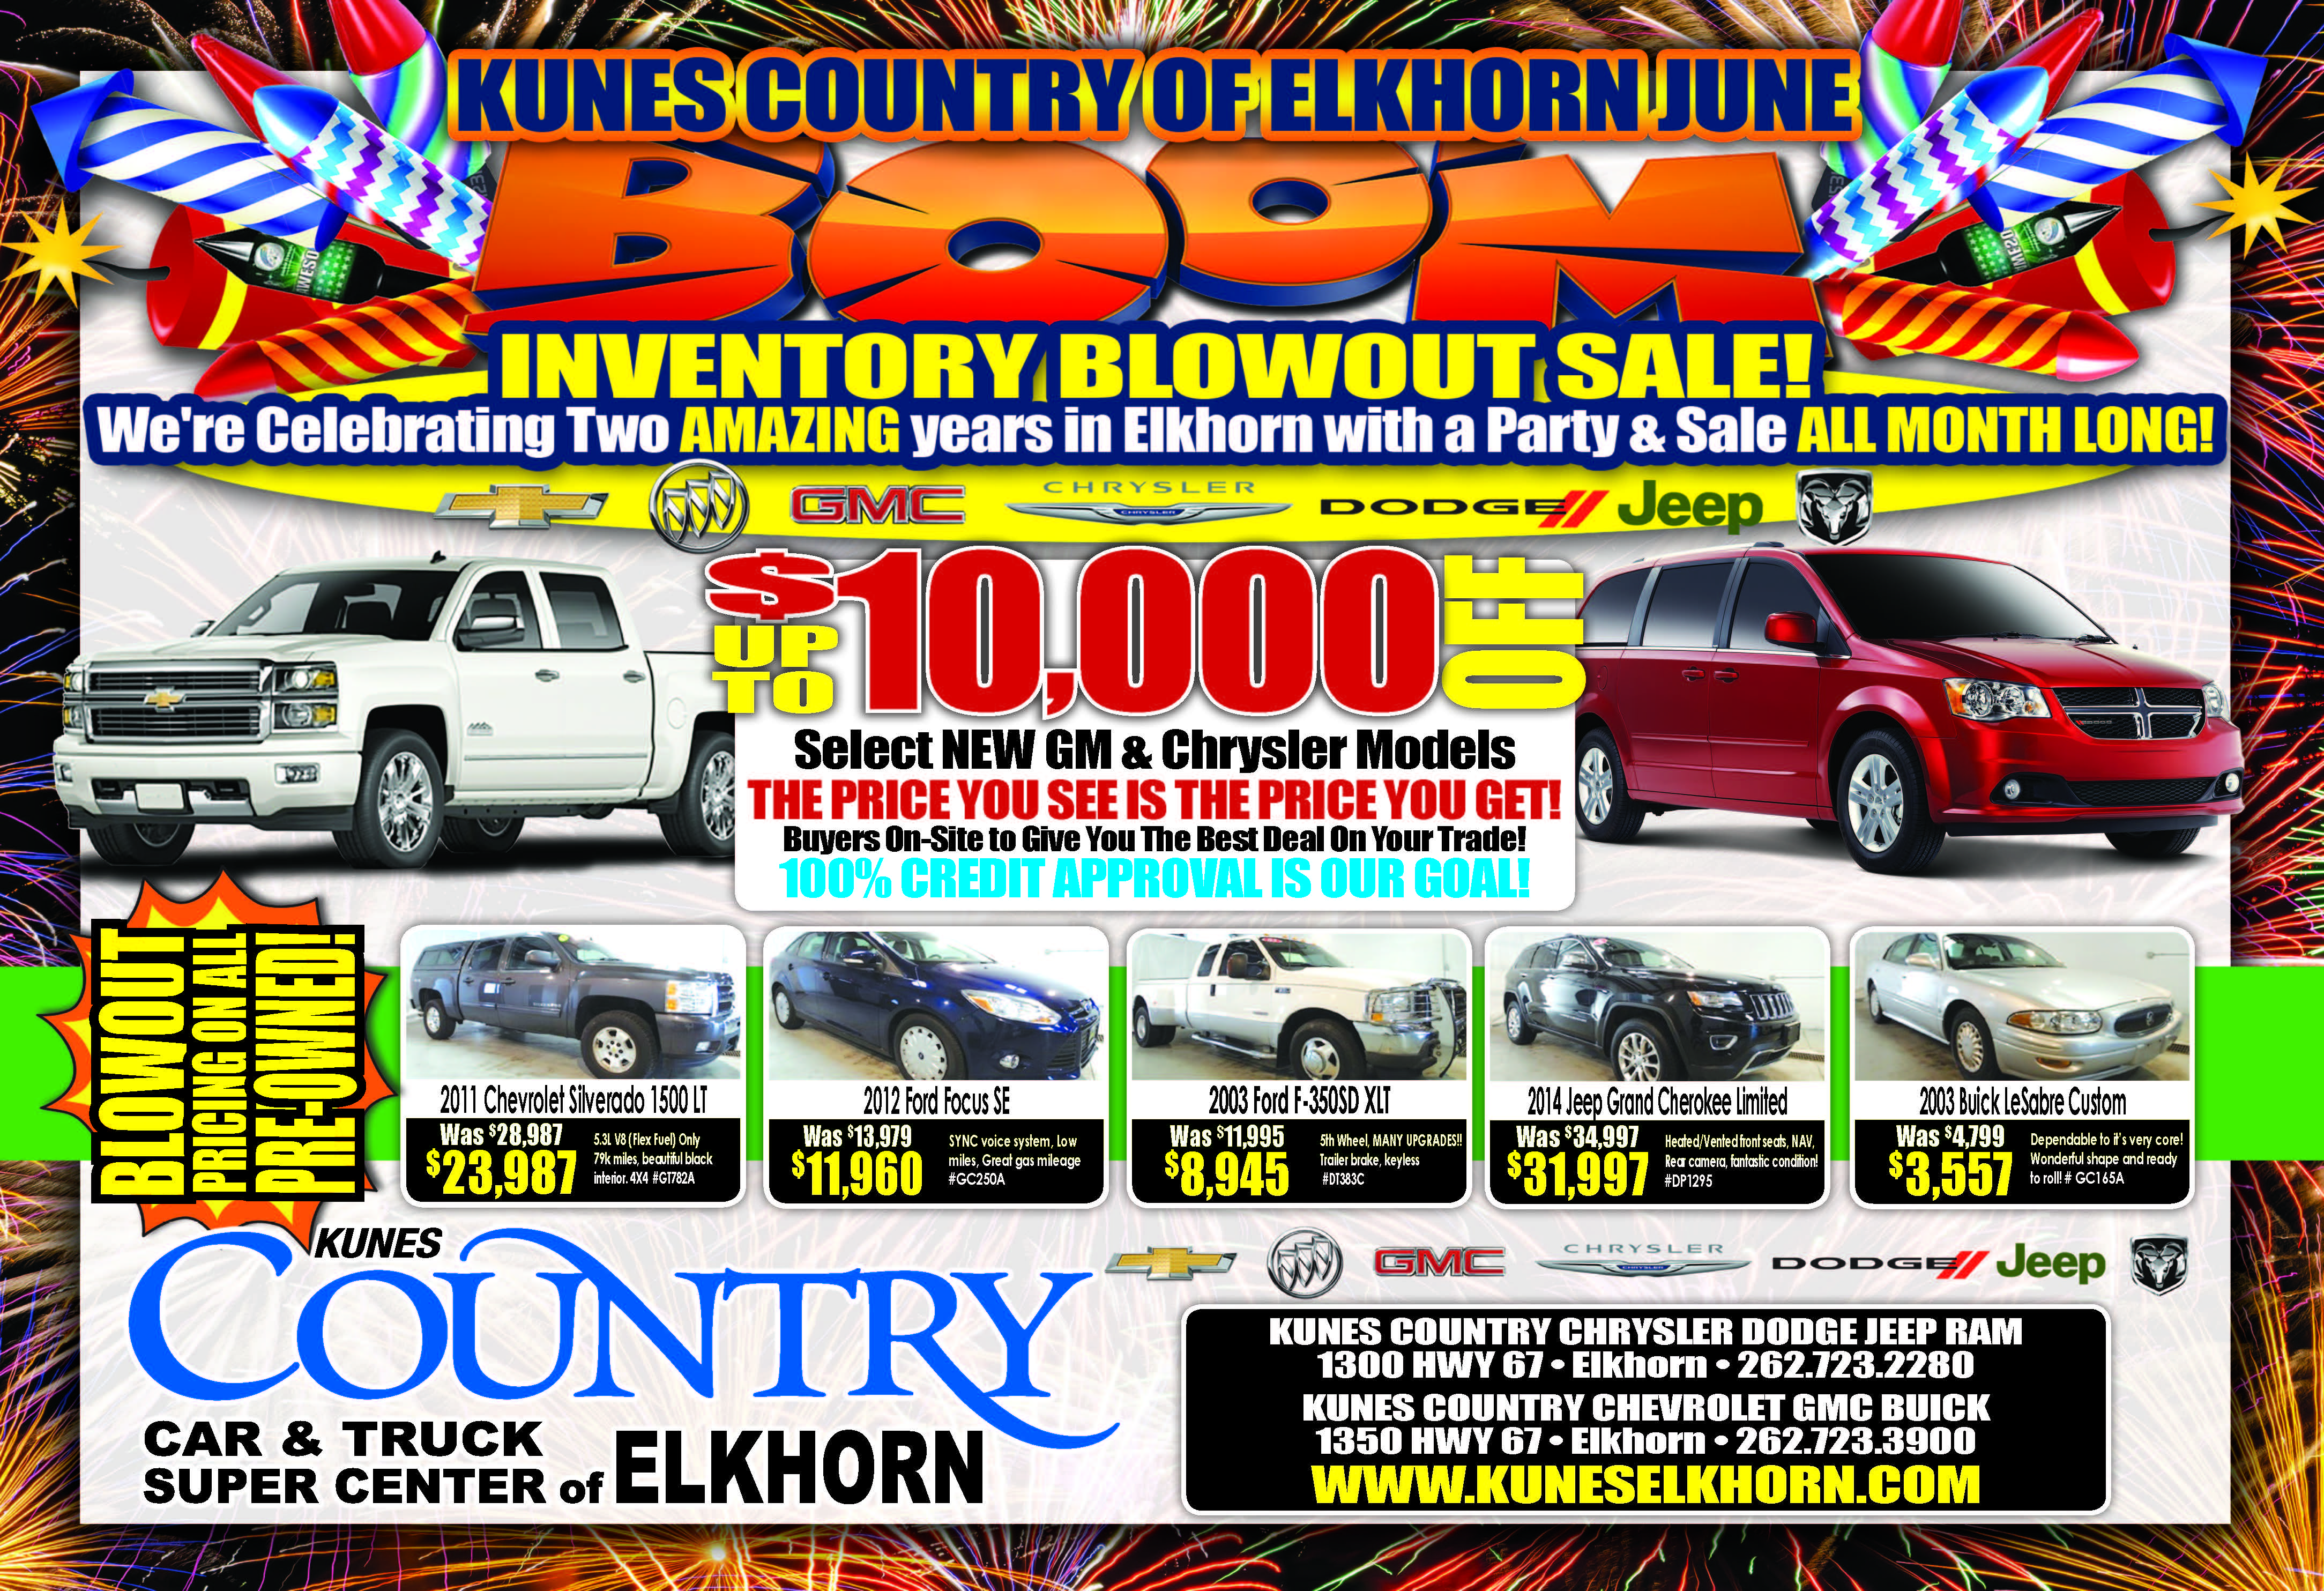 Kunes Country Elkhorn >> Kunes Country Elkhorn (EDDM) – American Business Technologies, Inc.